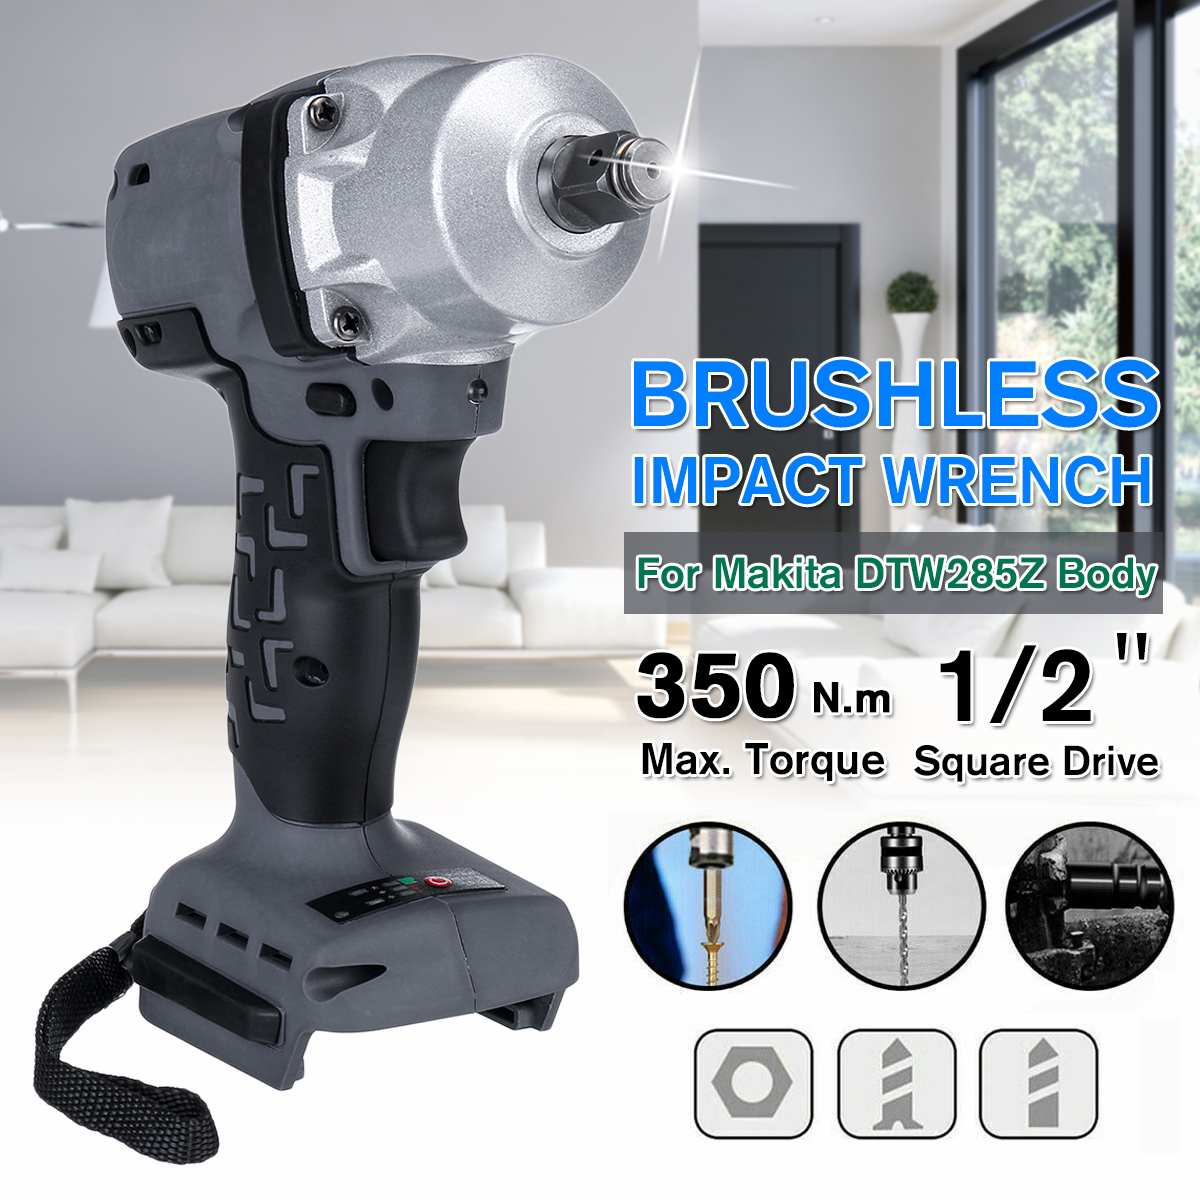 NEW 18V 350Nm Electric Rechargeable Brushless Impact Wrench Power Tool Cordless With LED Job Light For Makita Battery